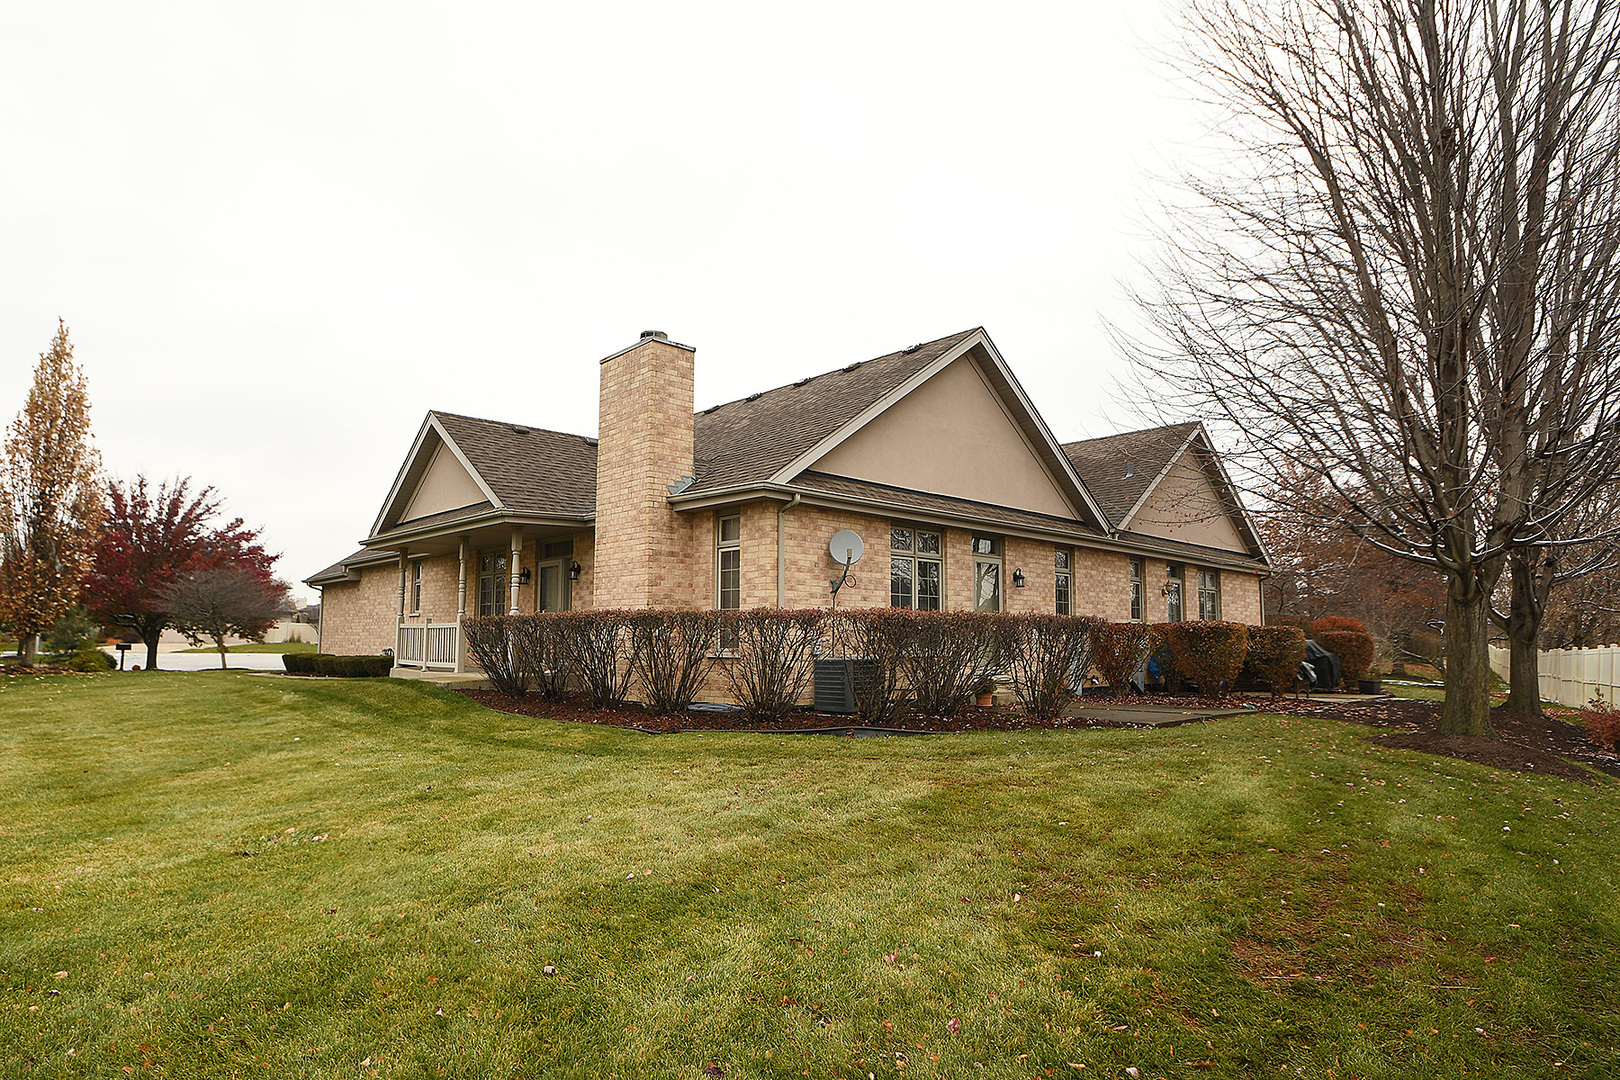 8123 Nielsen Drive, Tinley Park in Cook County, IL 60477 Home for Sale